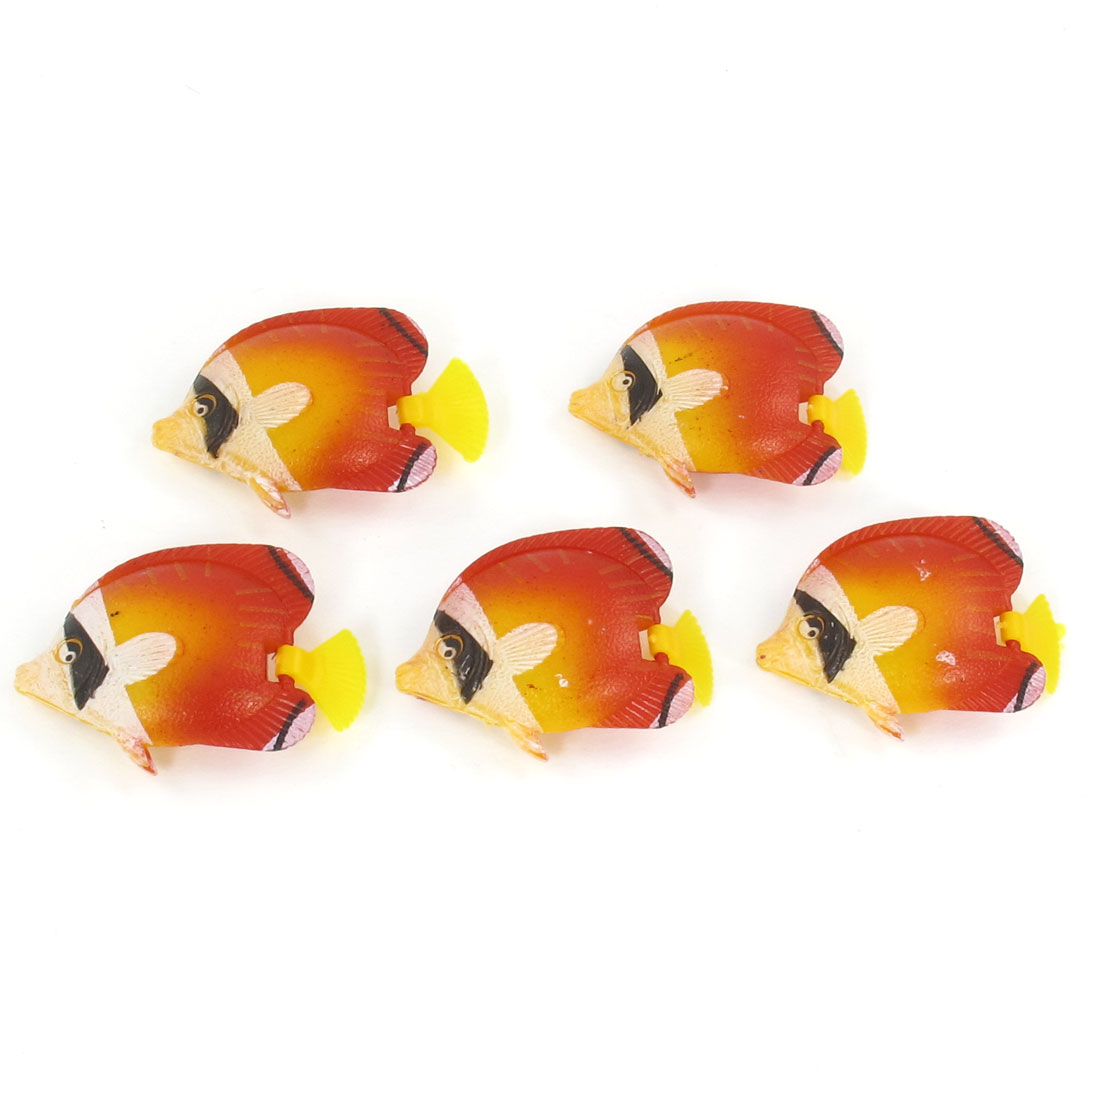 5 Pcs Aquarium Orange Yellow Simulated Plastic Wiggly Tail Fish Decoration